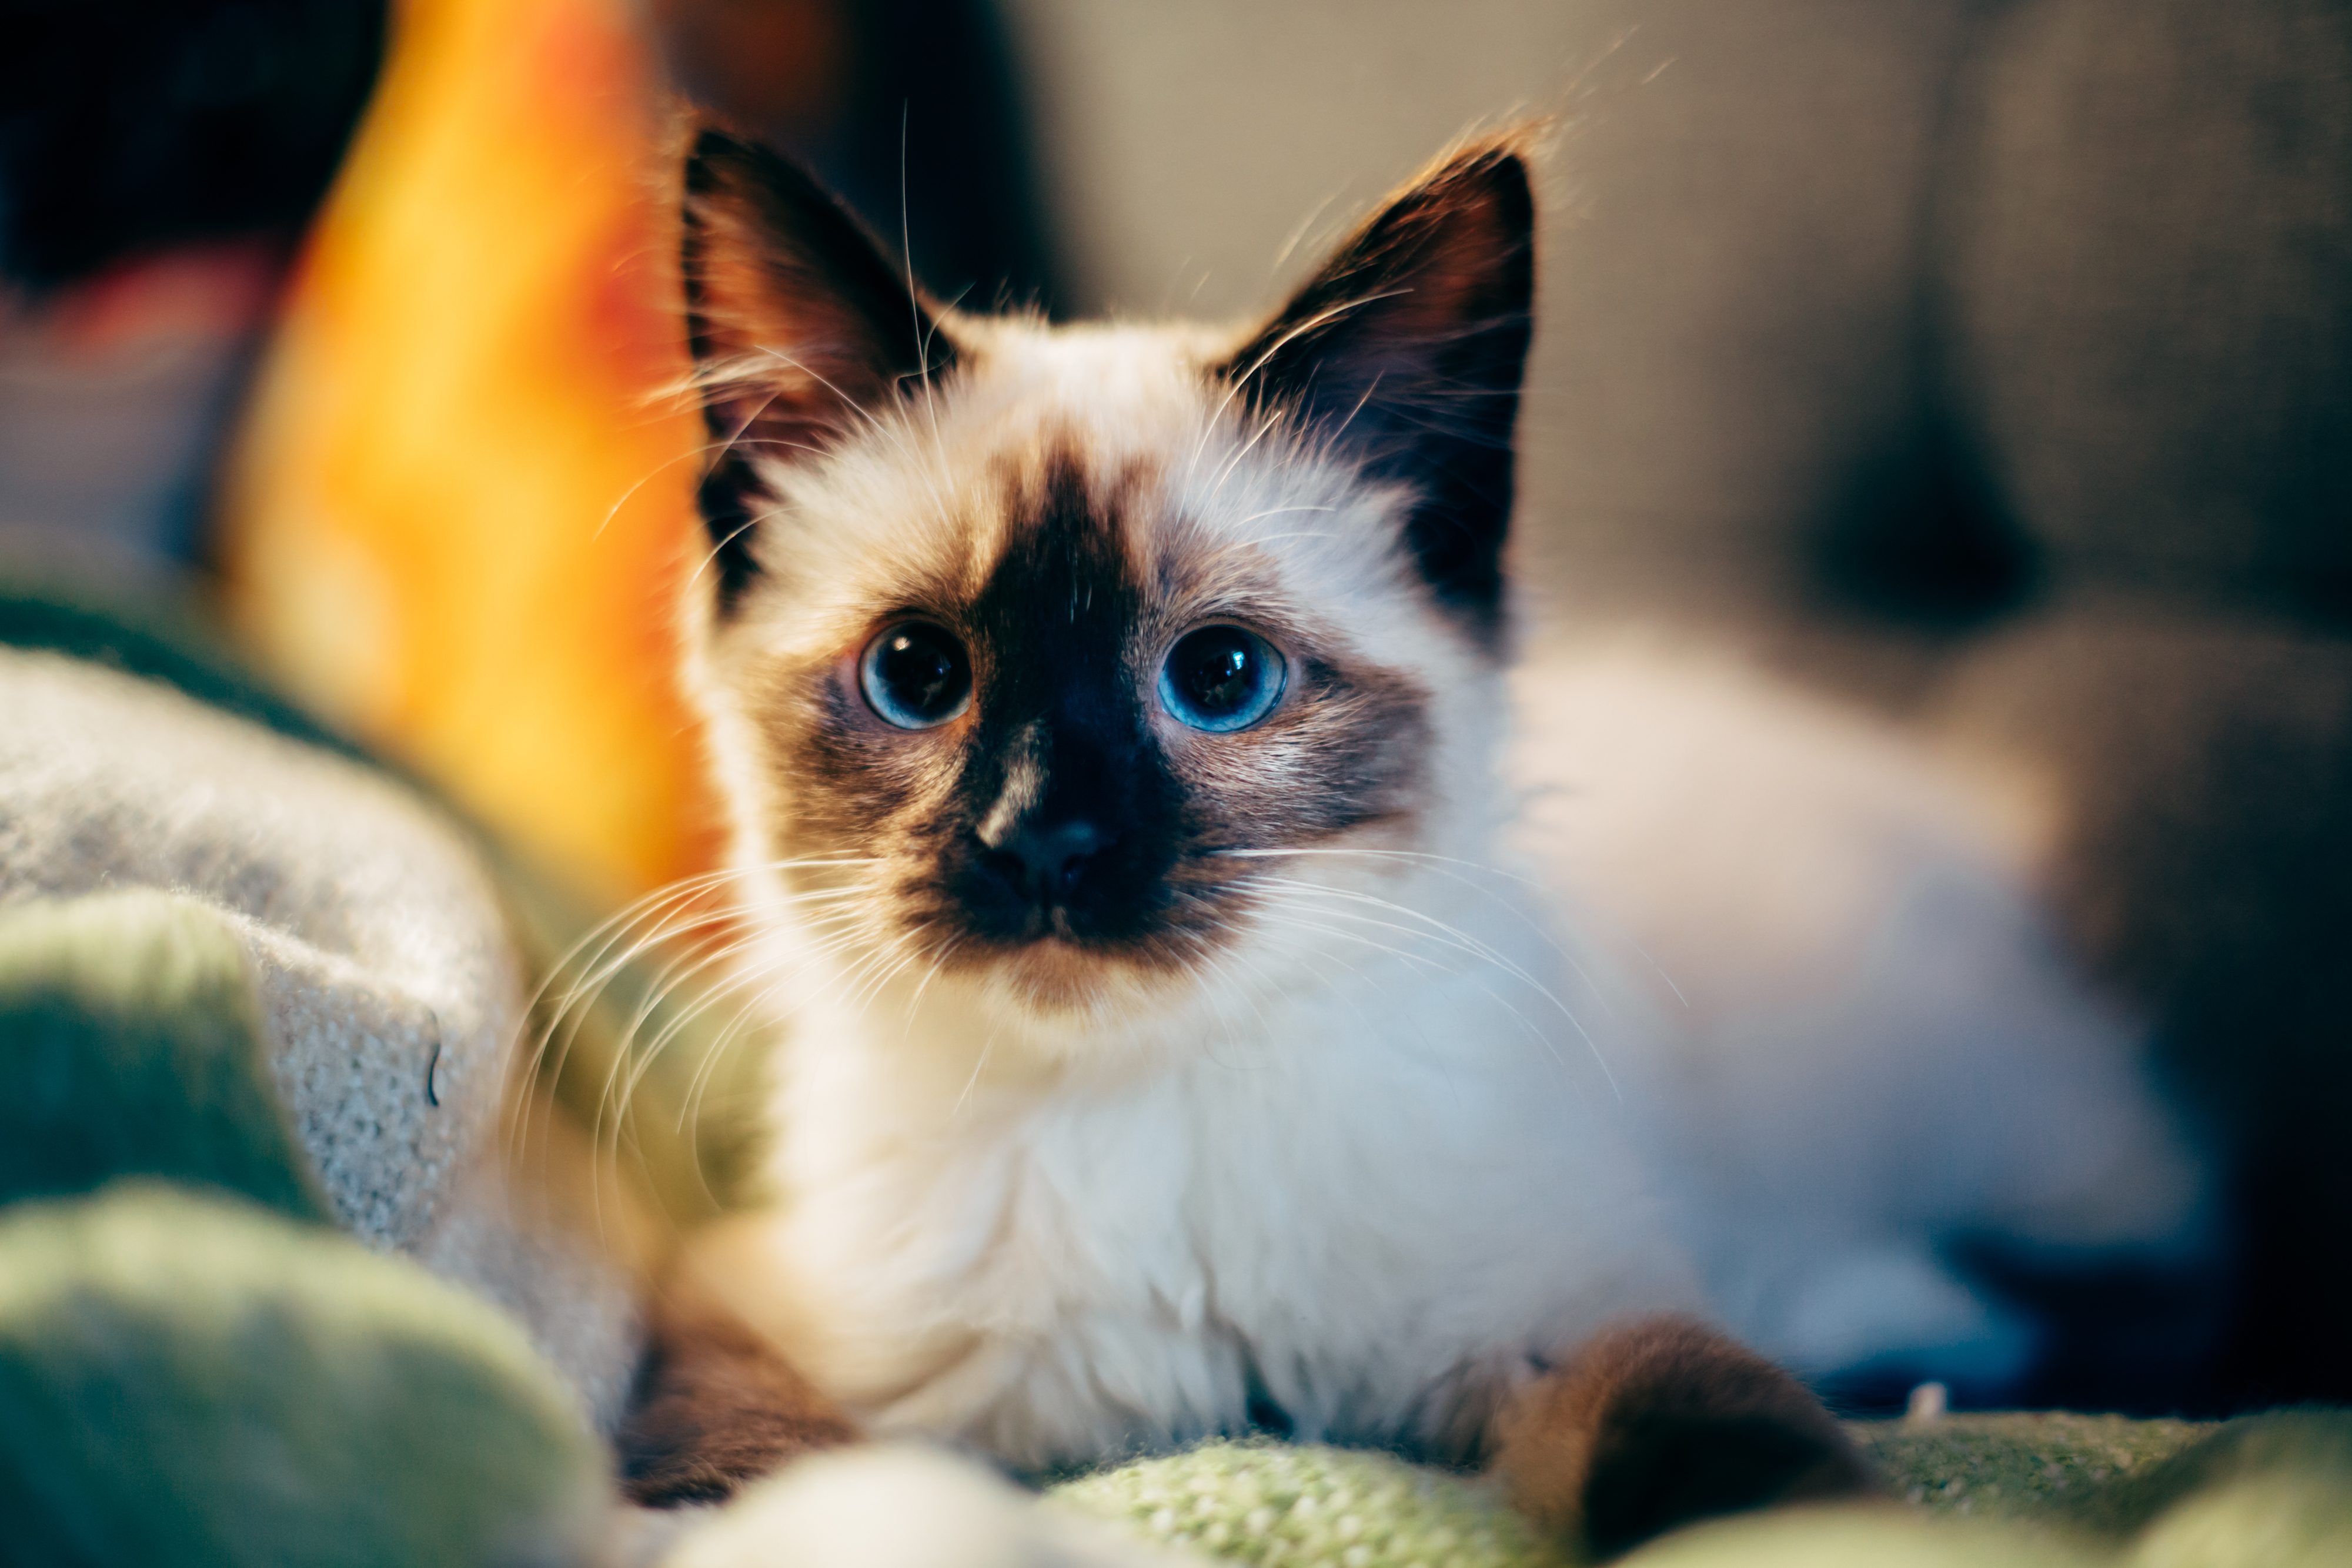 54121 download wallpaper Animals, Kitty, Kitten, Siamese, Nice, Sweetheart screensavers and pictures for free